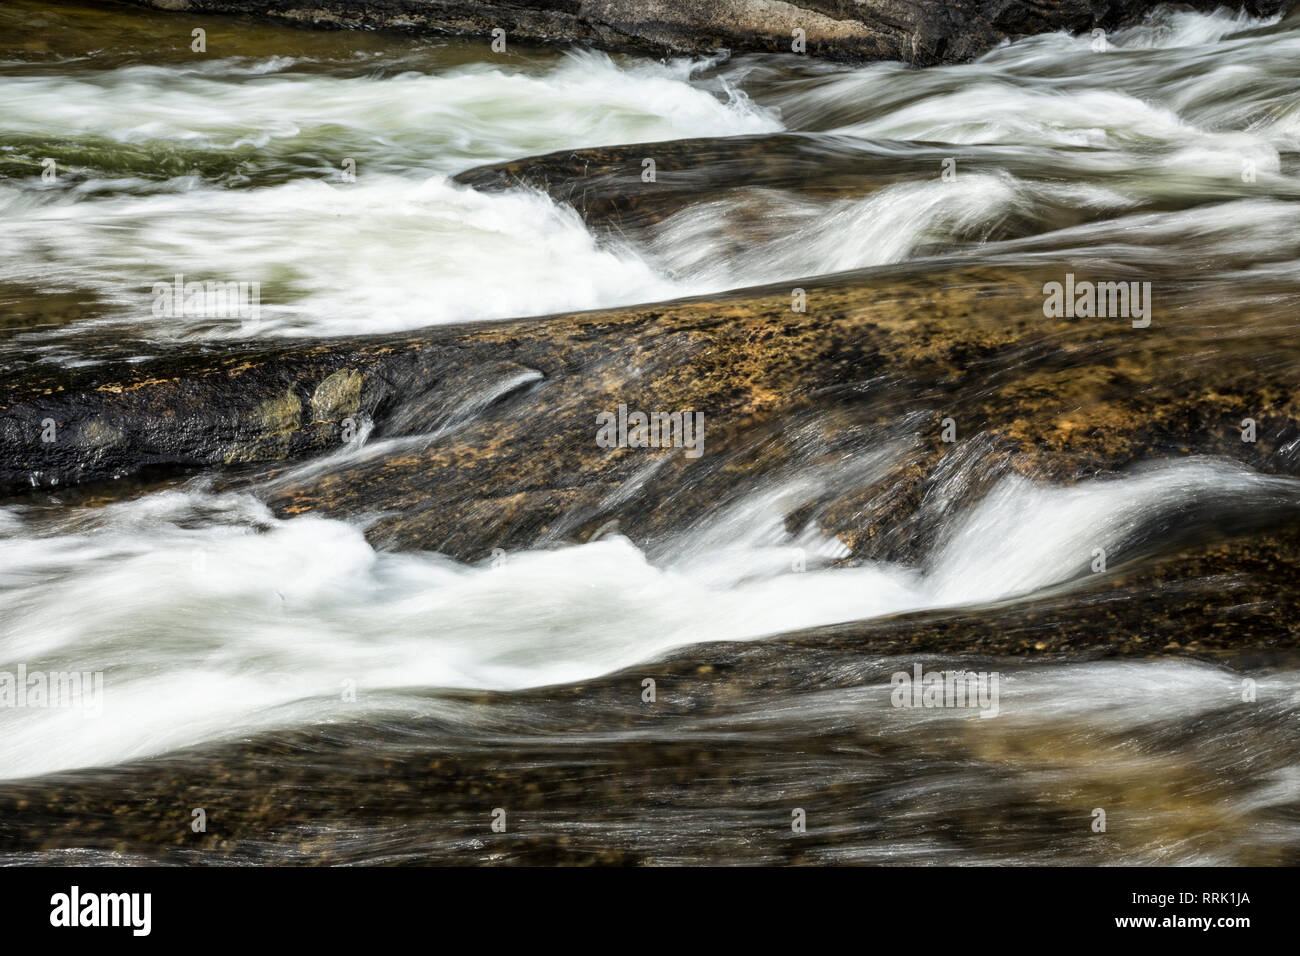 Rapids on Rushing River, Rushing River Provincial Park, Ontario, Canada - Stock Image